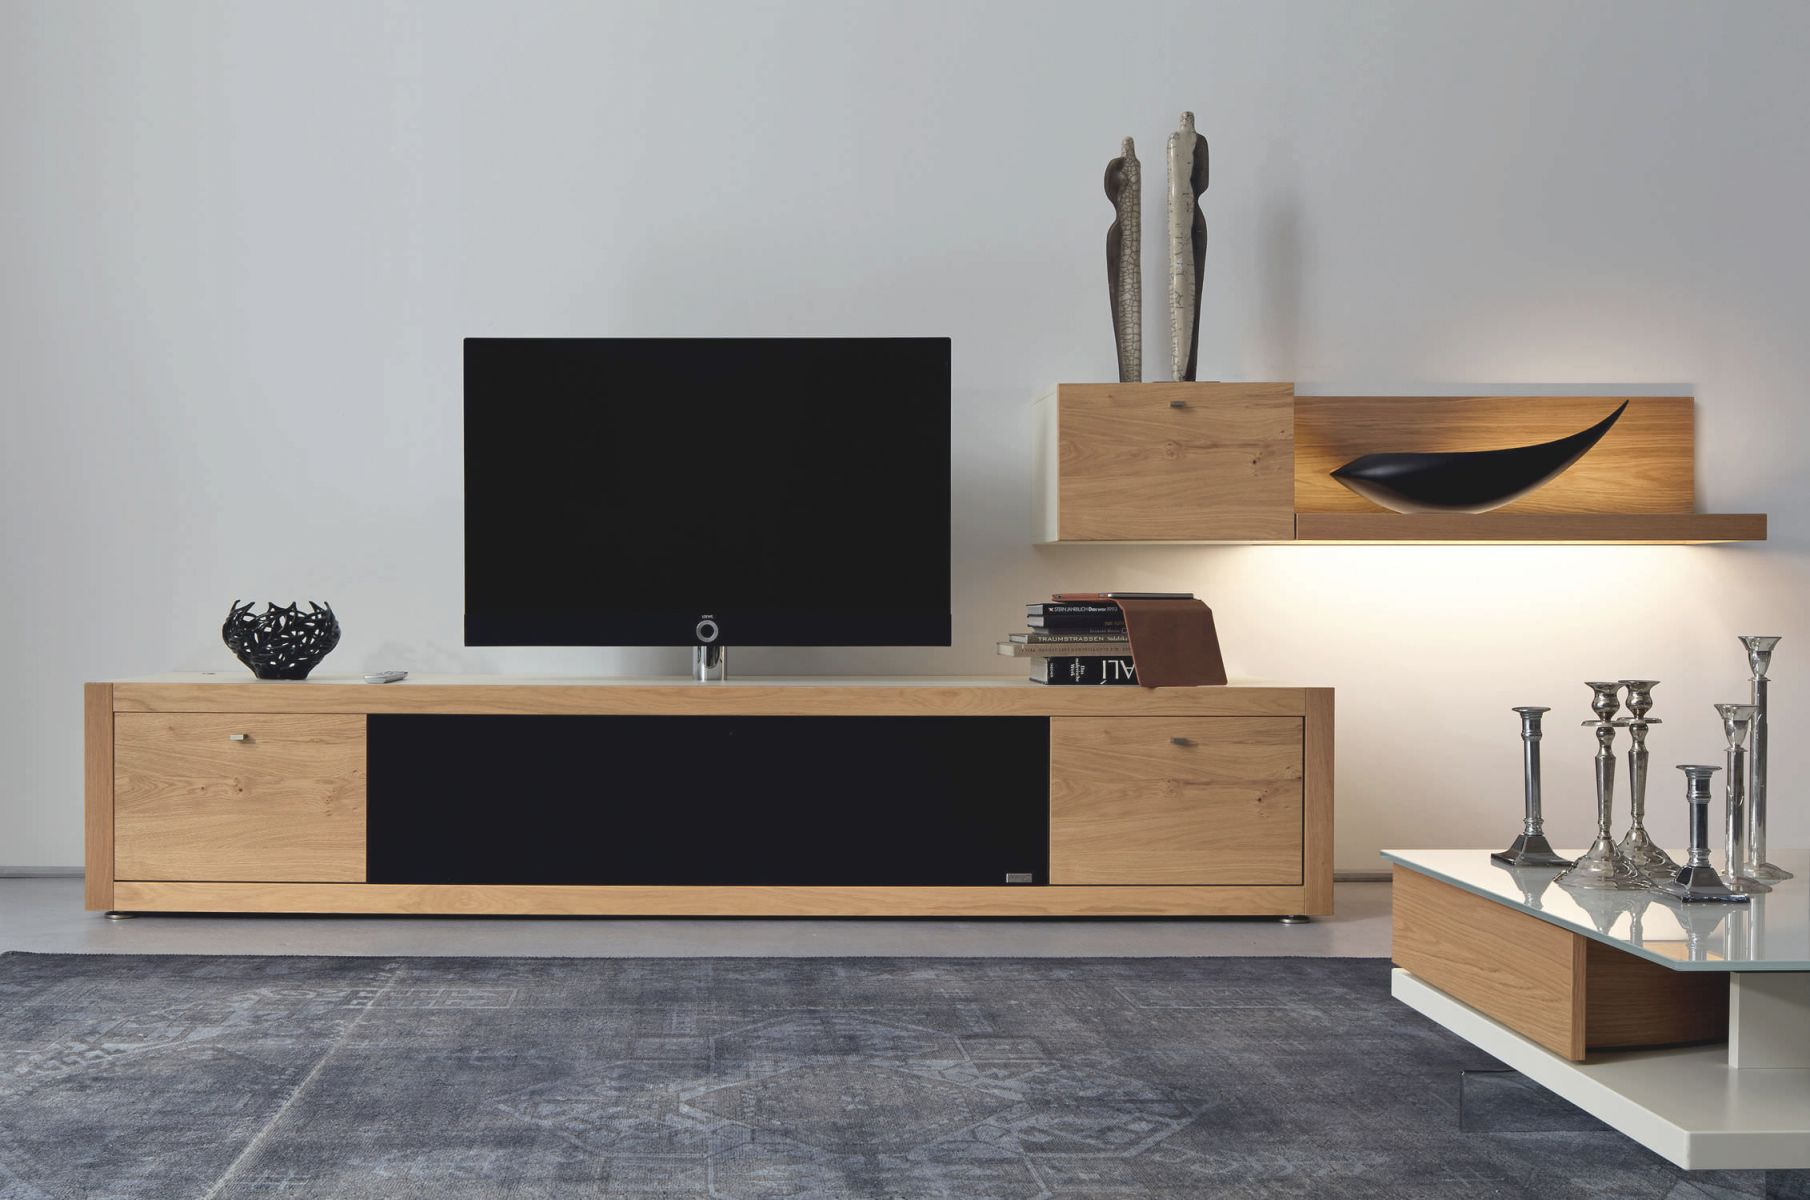 35 Crazy Trendy Tv Units Contemporary Style That Look So for Stylish Tv Unit